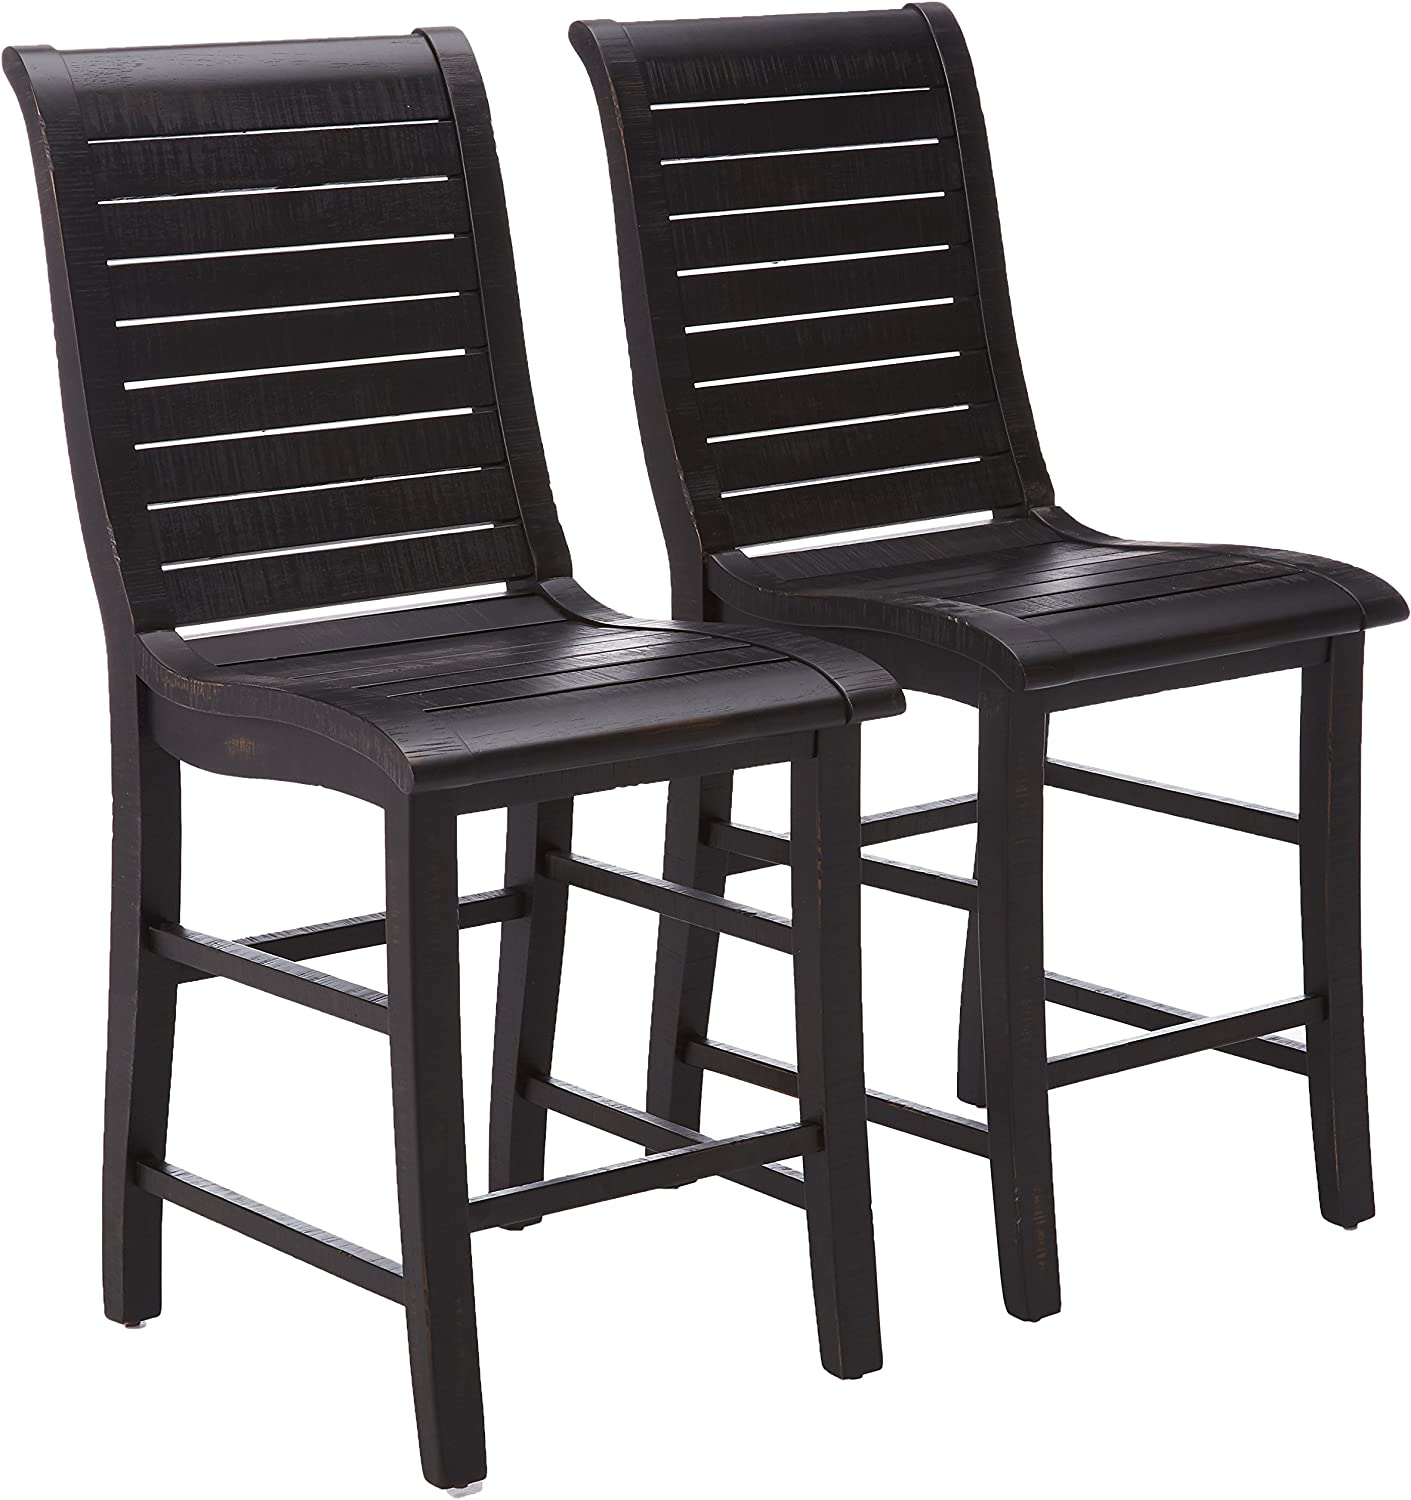 Progressive Furniture Willow Counter Chair (2/Ctn) Black